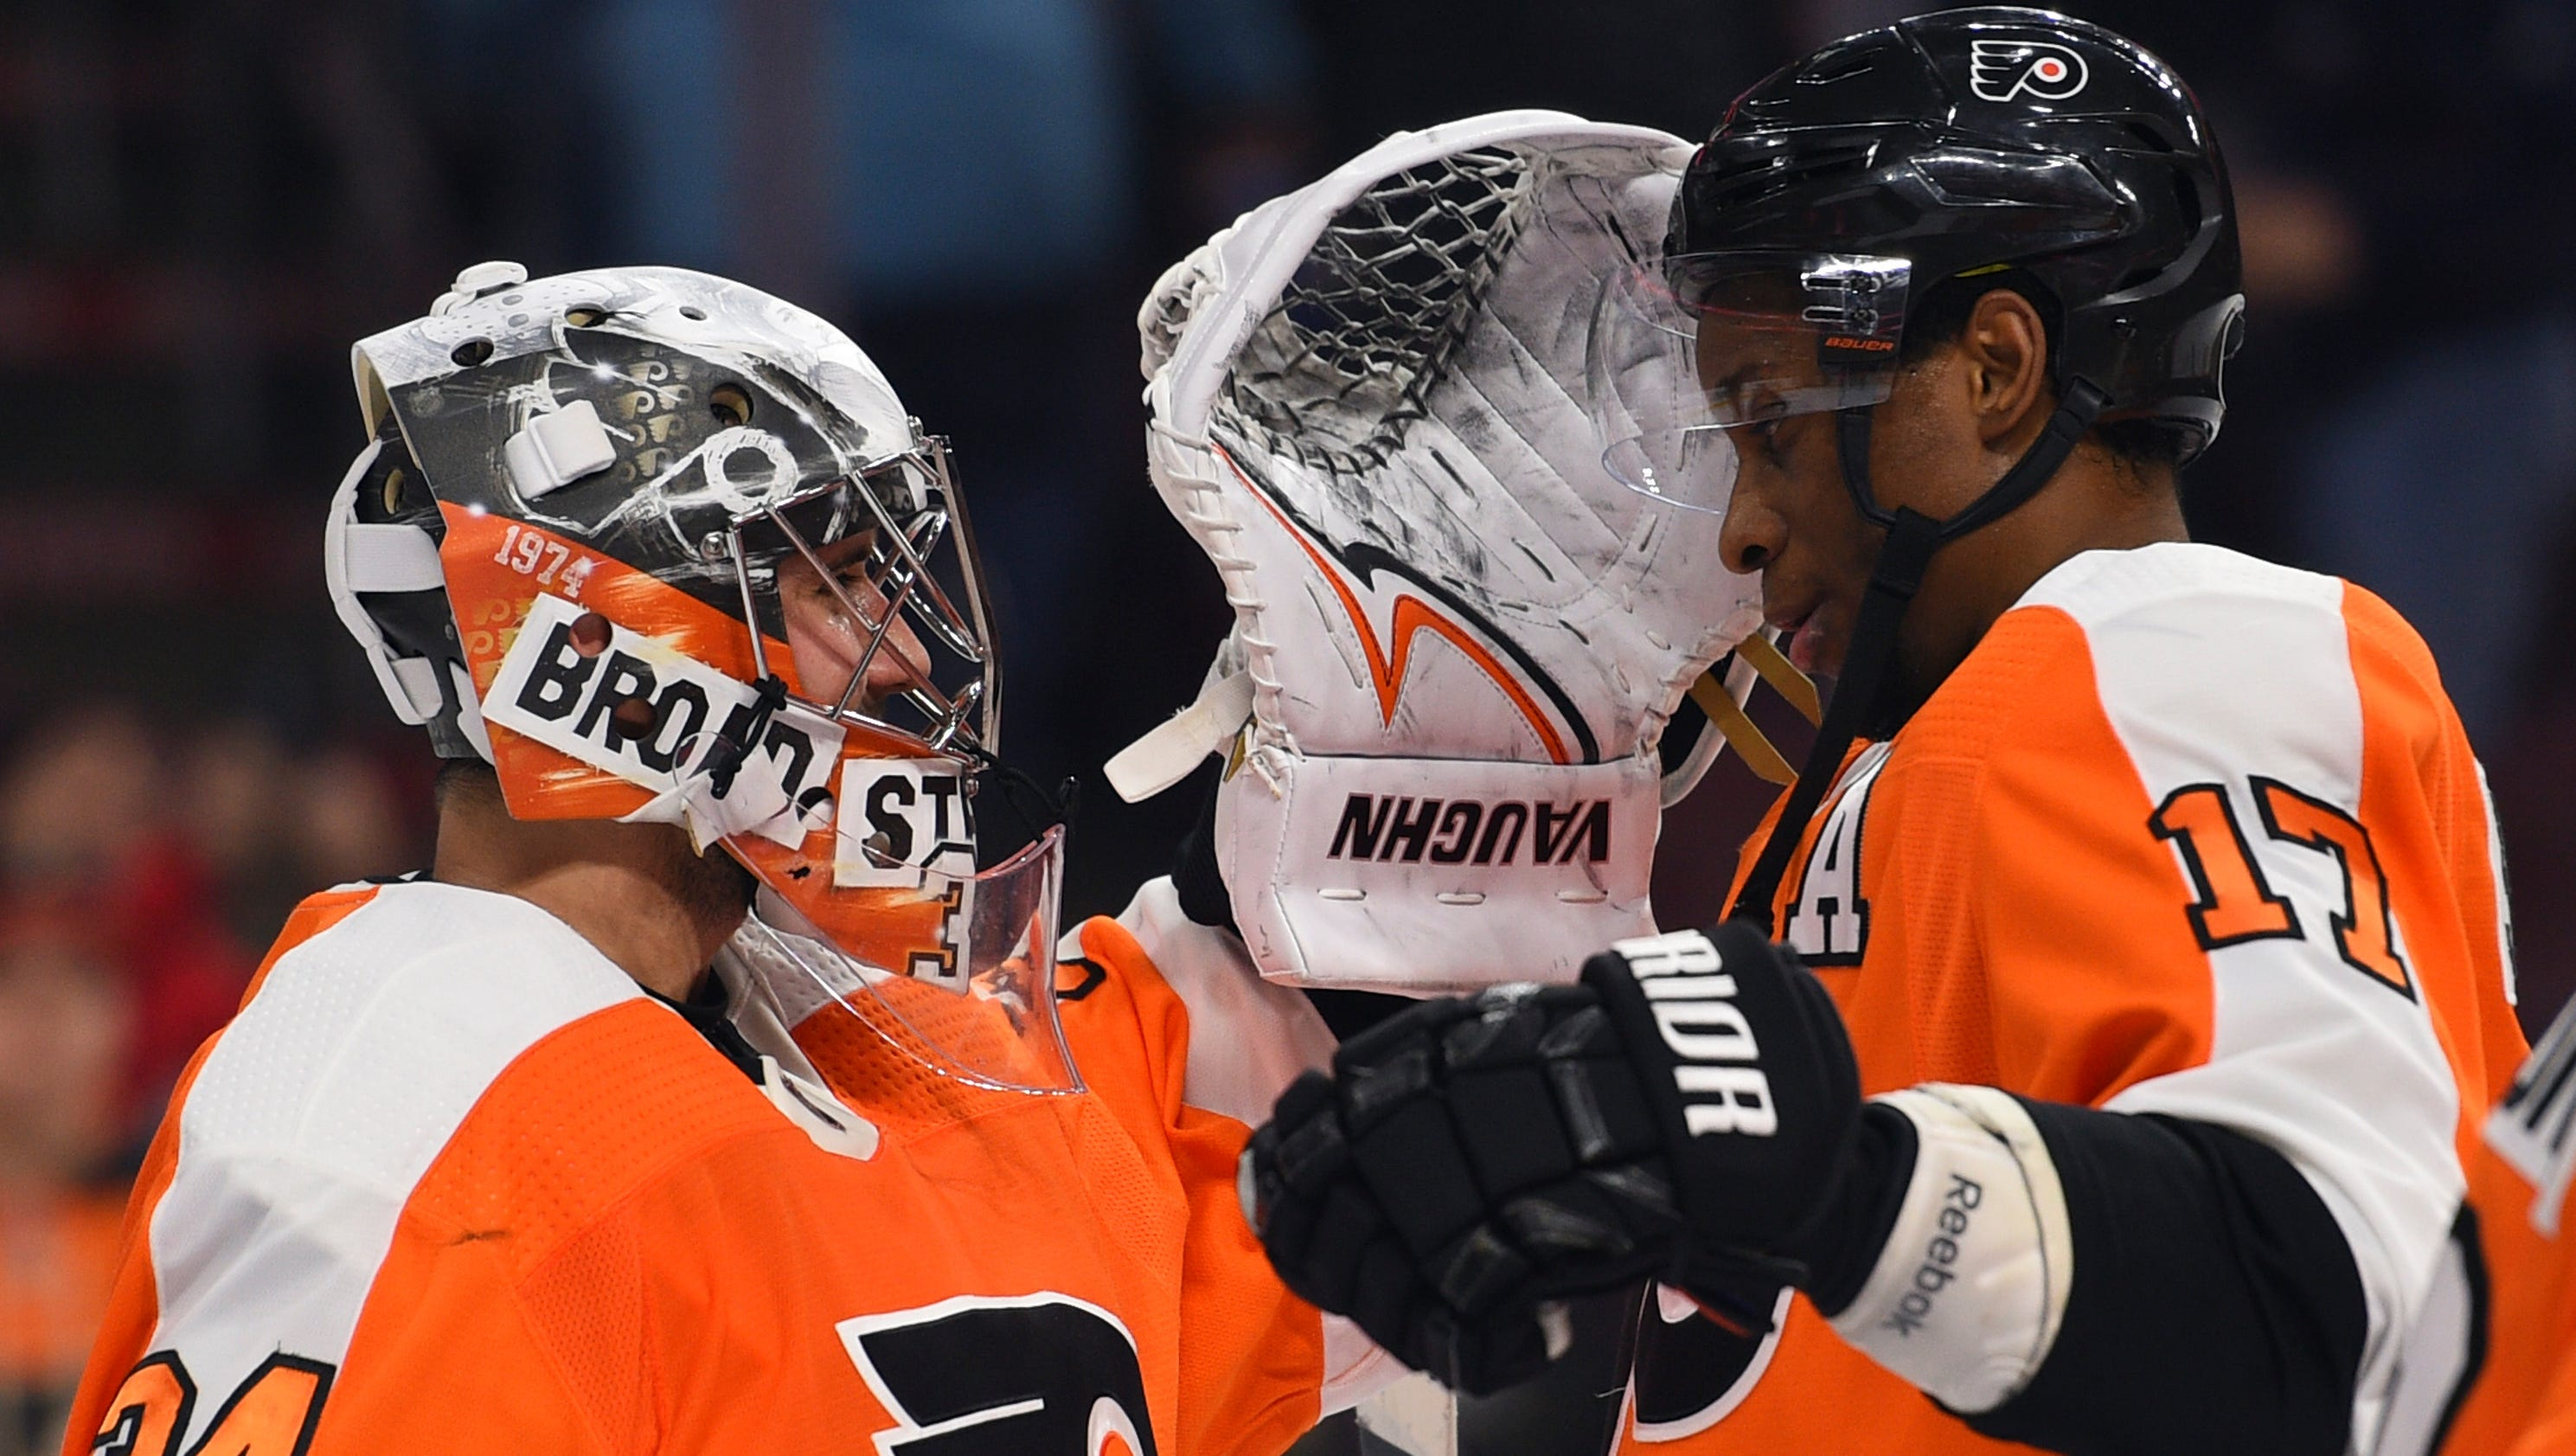 636570094830735964-ap-capitals-flyers-hockey